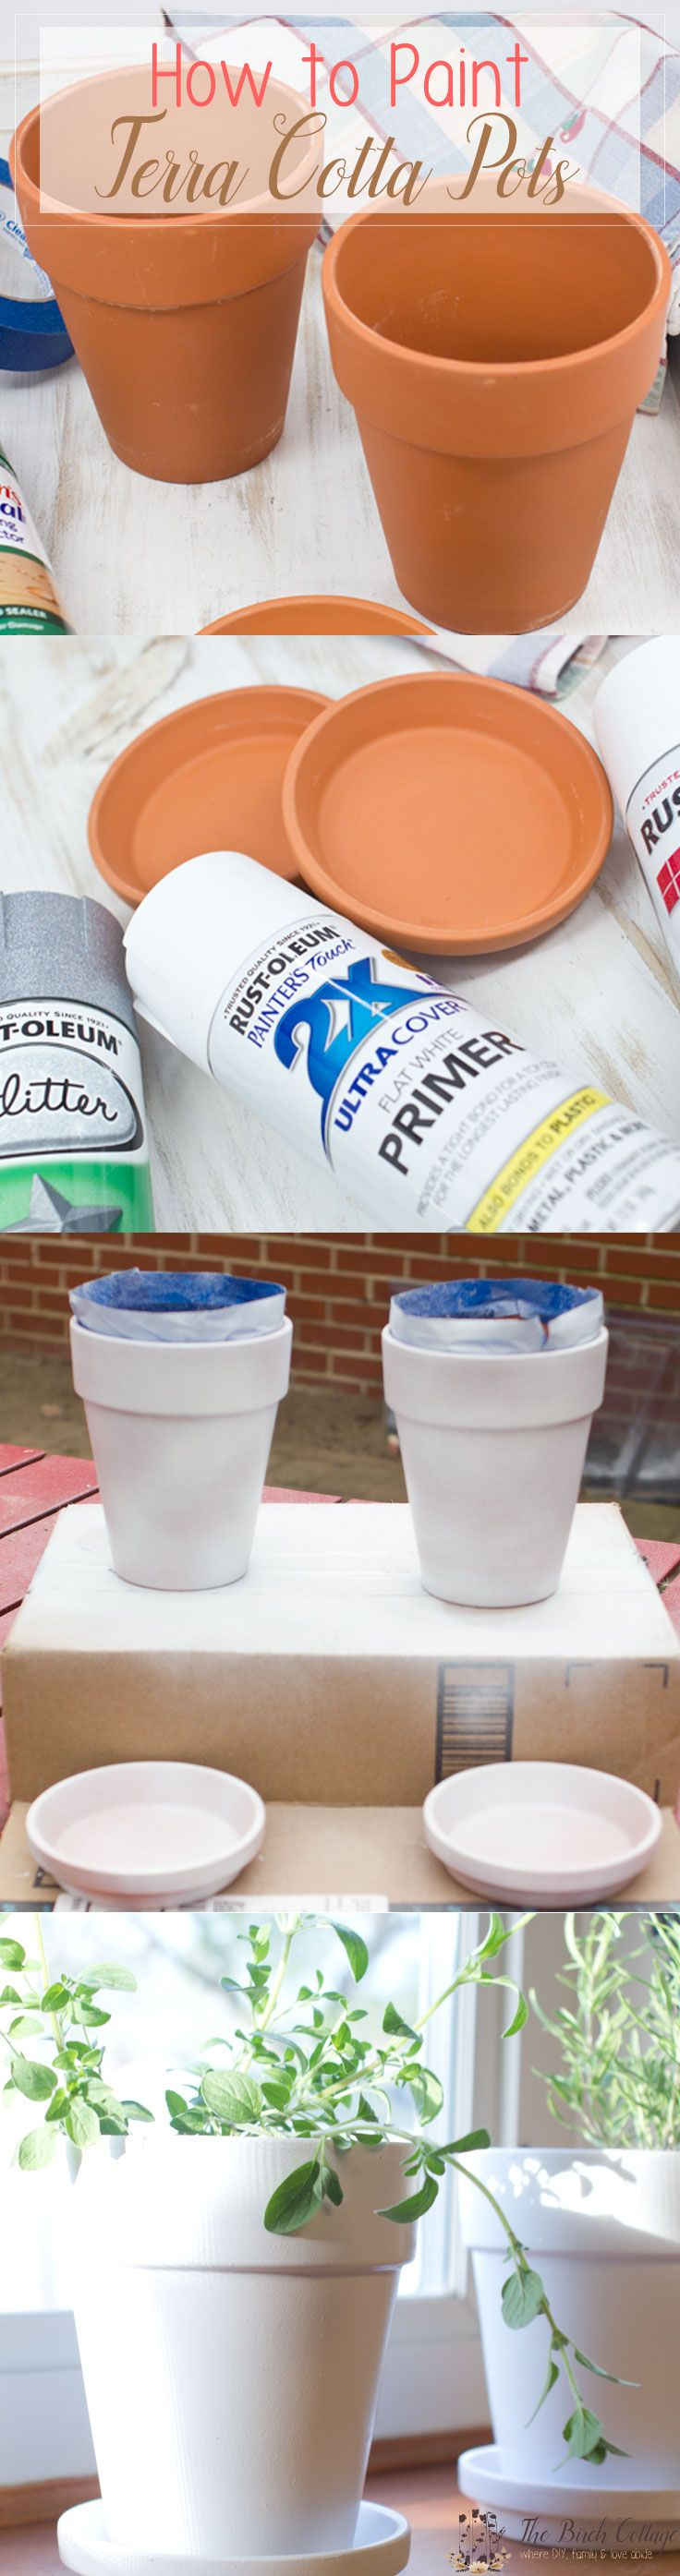 Learn how to paint terra cotta pots in this DIY tutorial. A great idea to turn…